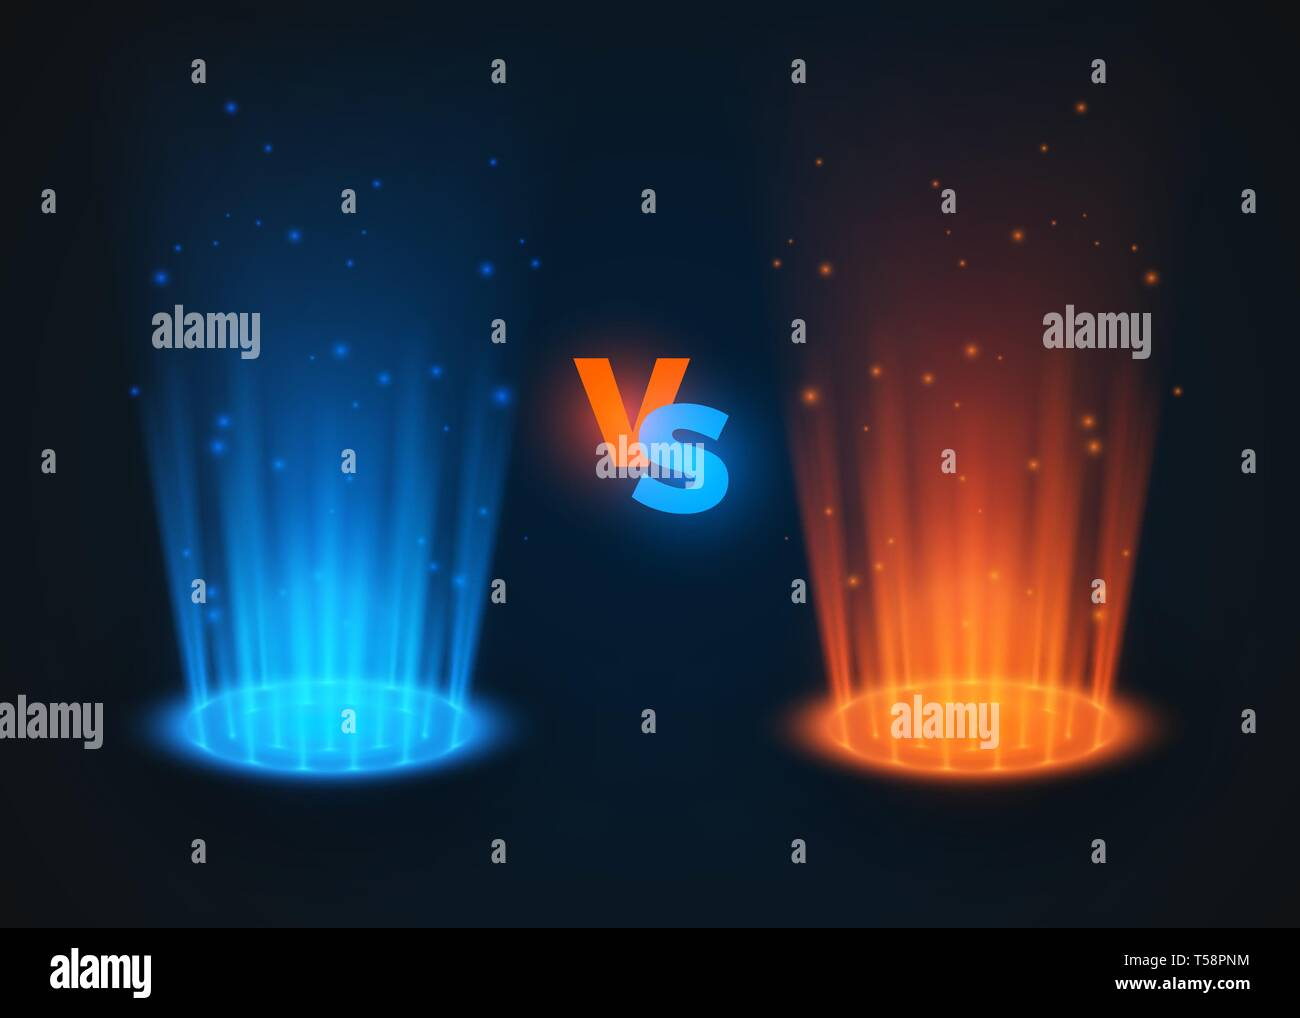 Versus glowing spotlight red and blue colors. VS battle scene with rays and sparks. Abstract hologram. vector illustration - Stock Vector